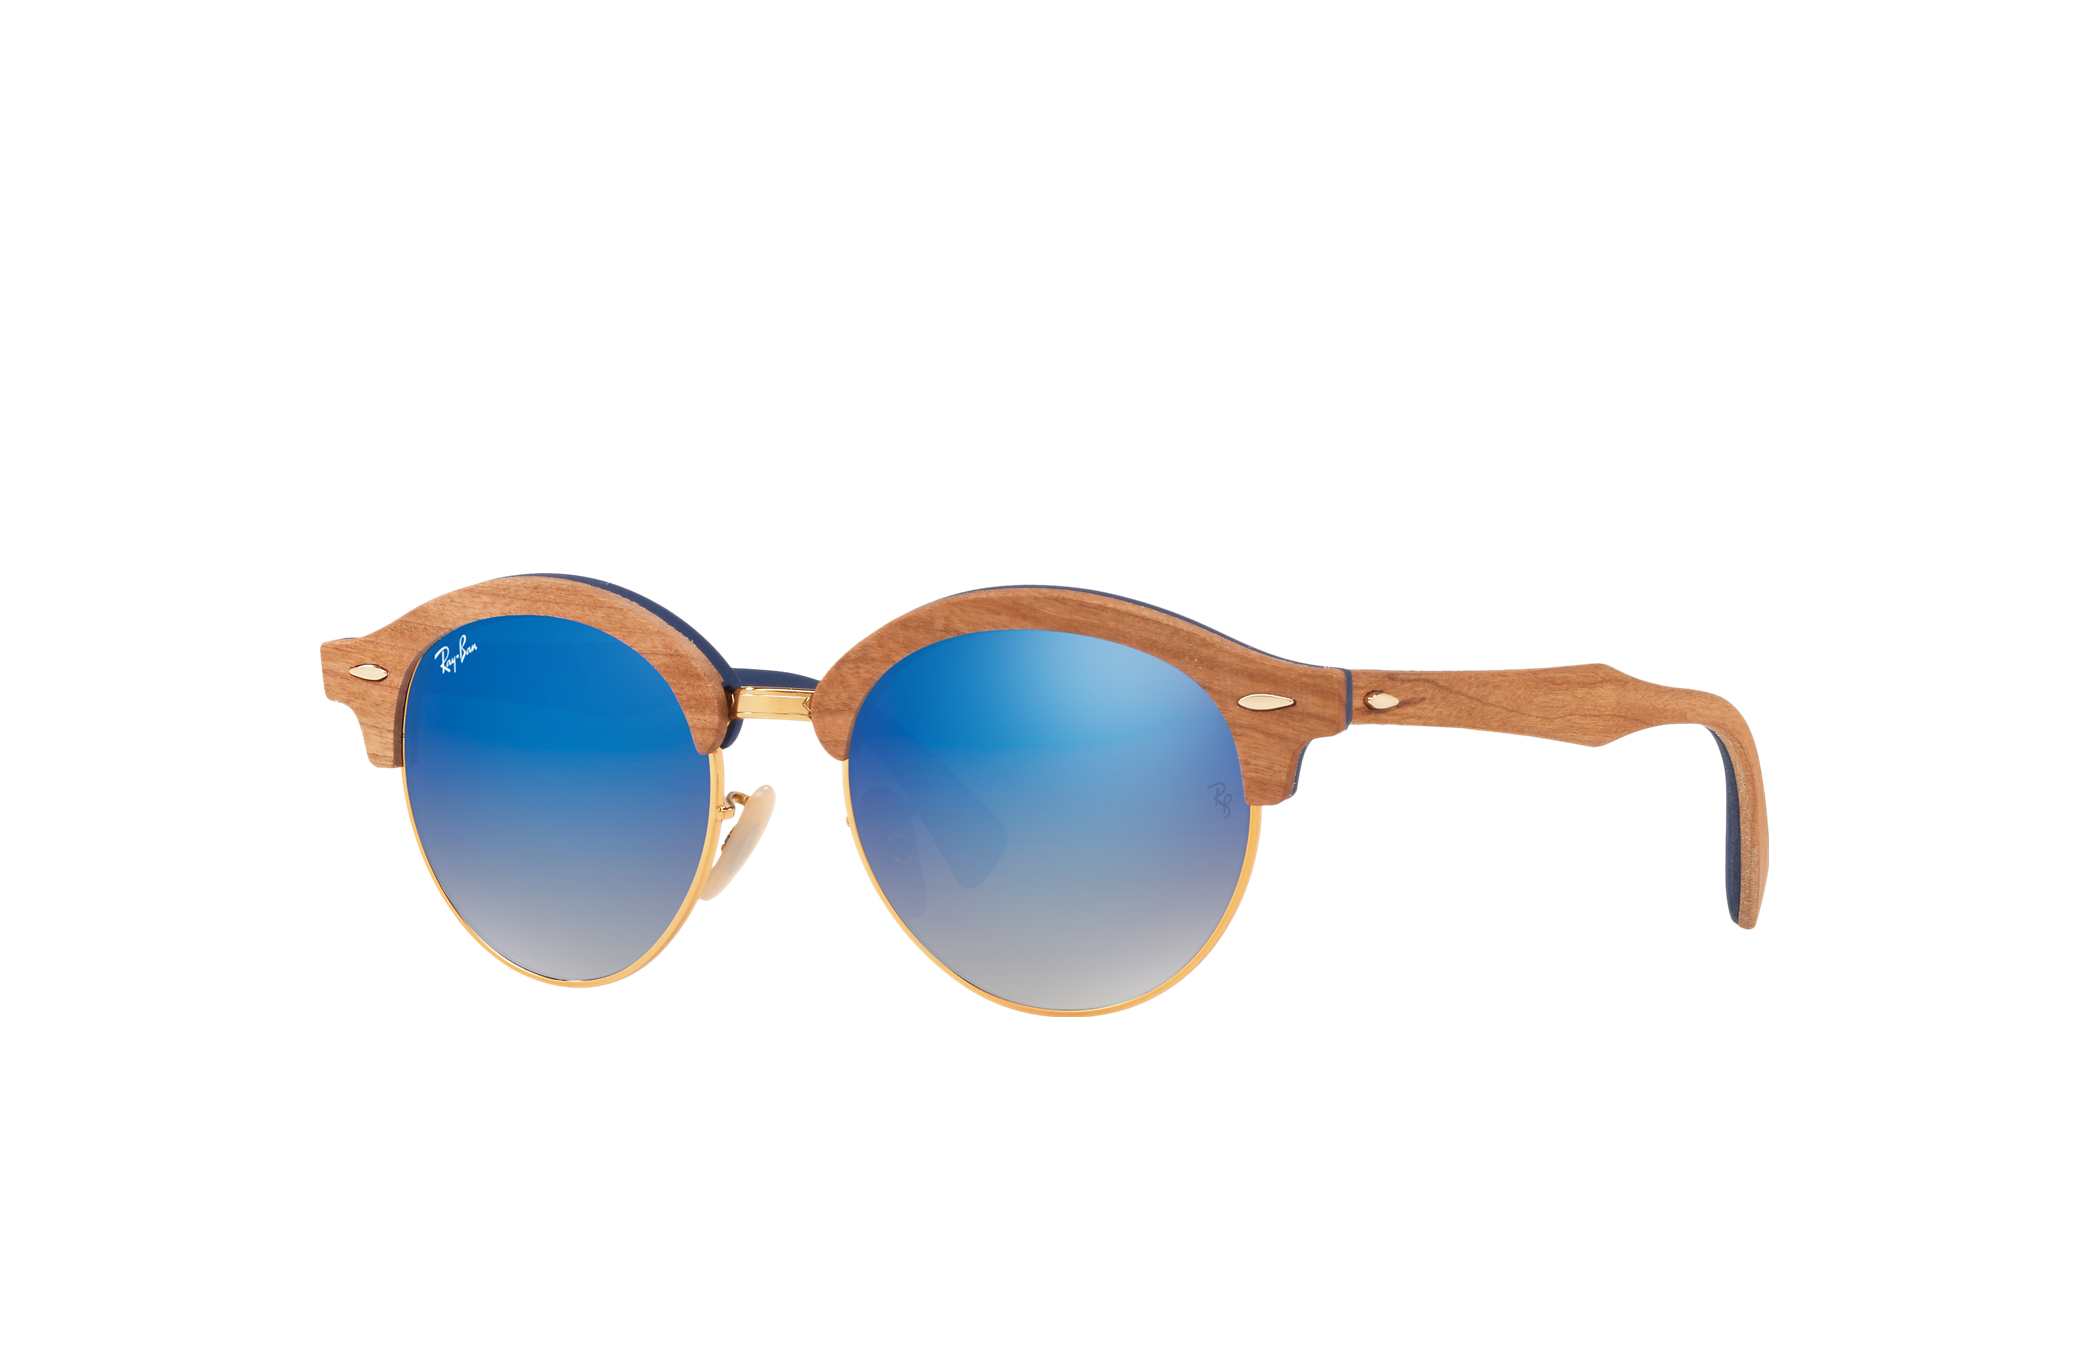 Ray-Ban Clubround Wood Brown, Blue Lenses - RB4246M